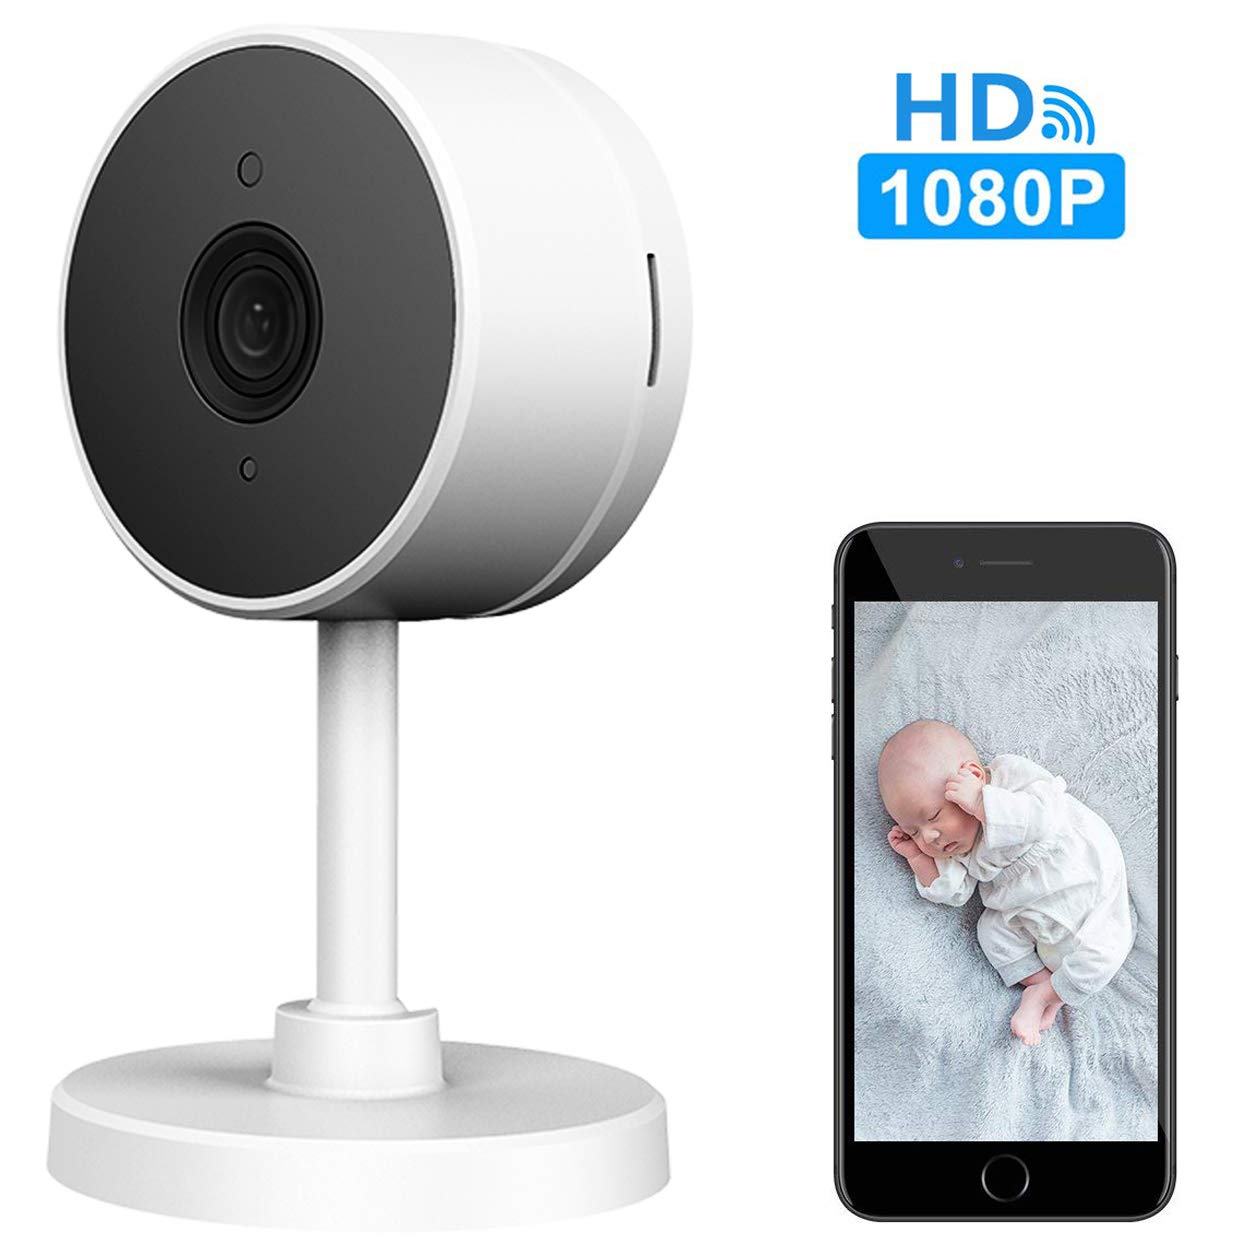 LARKKEY WiFi Home Security Surveillance Camera 1080P, Smart Baby Monitor Compatible with Alexa and Google Home, Motion Detection & Tracker, Night Vision by LARKKEY (Image #1)